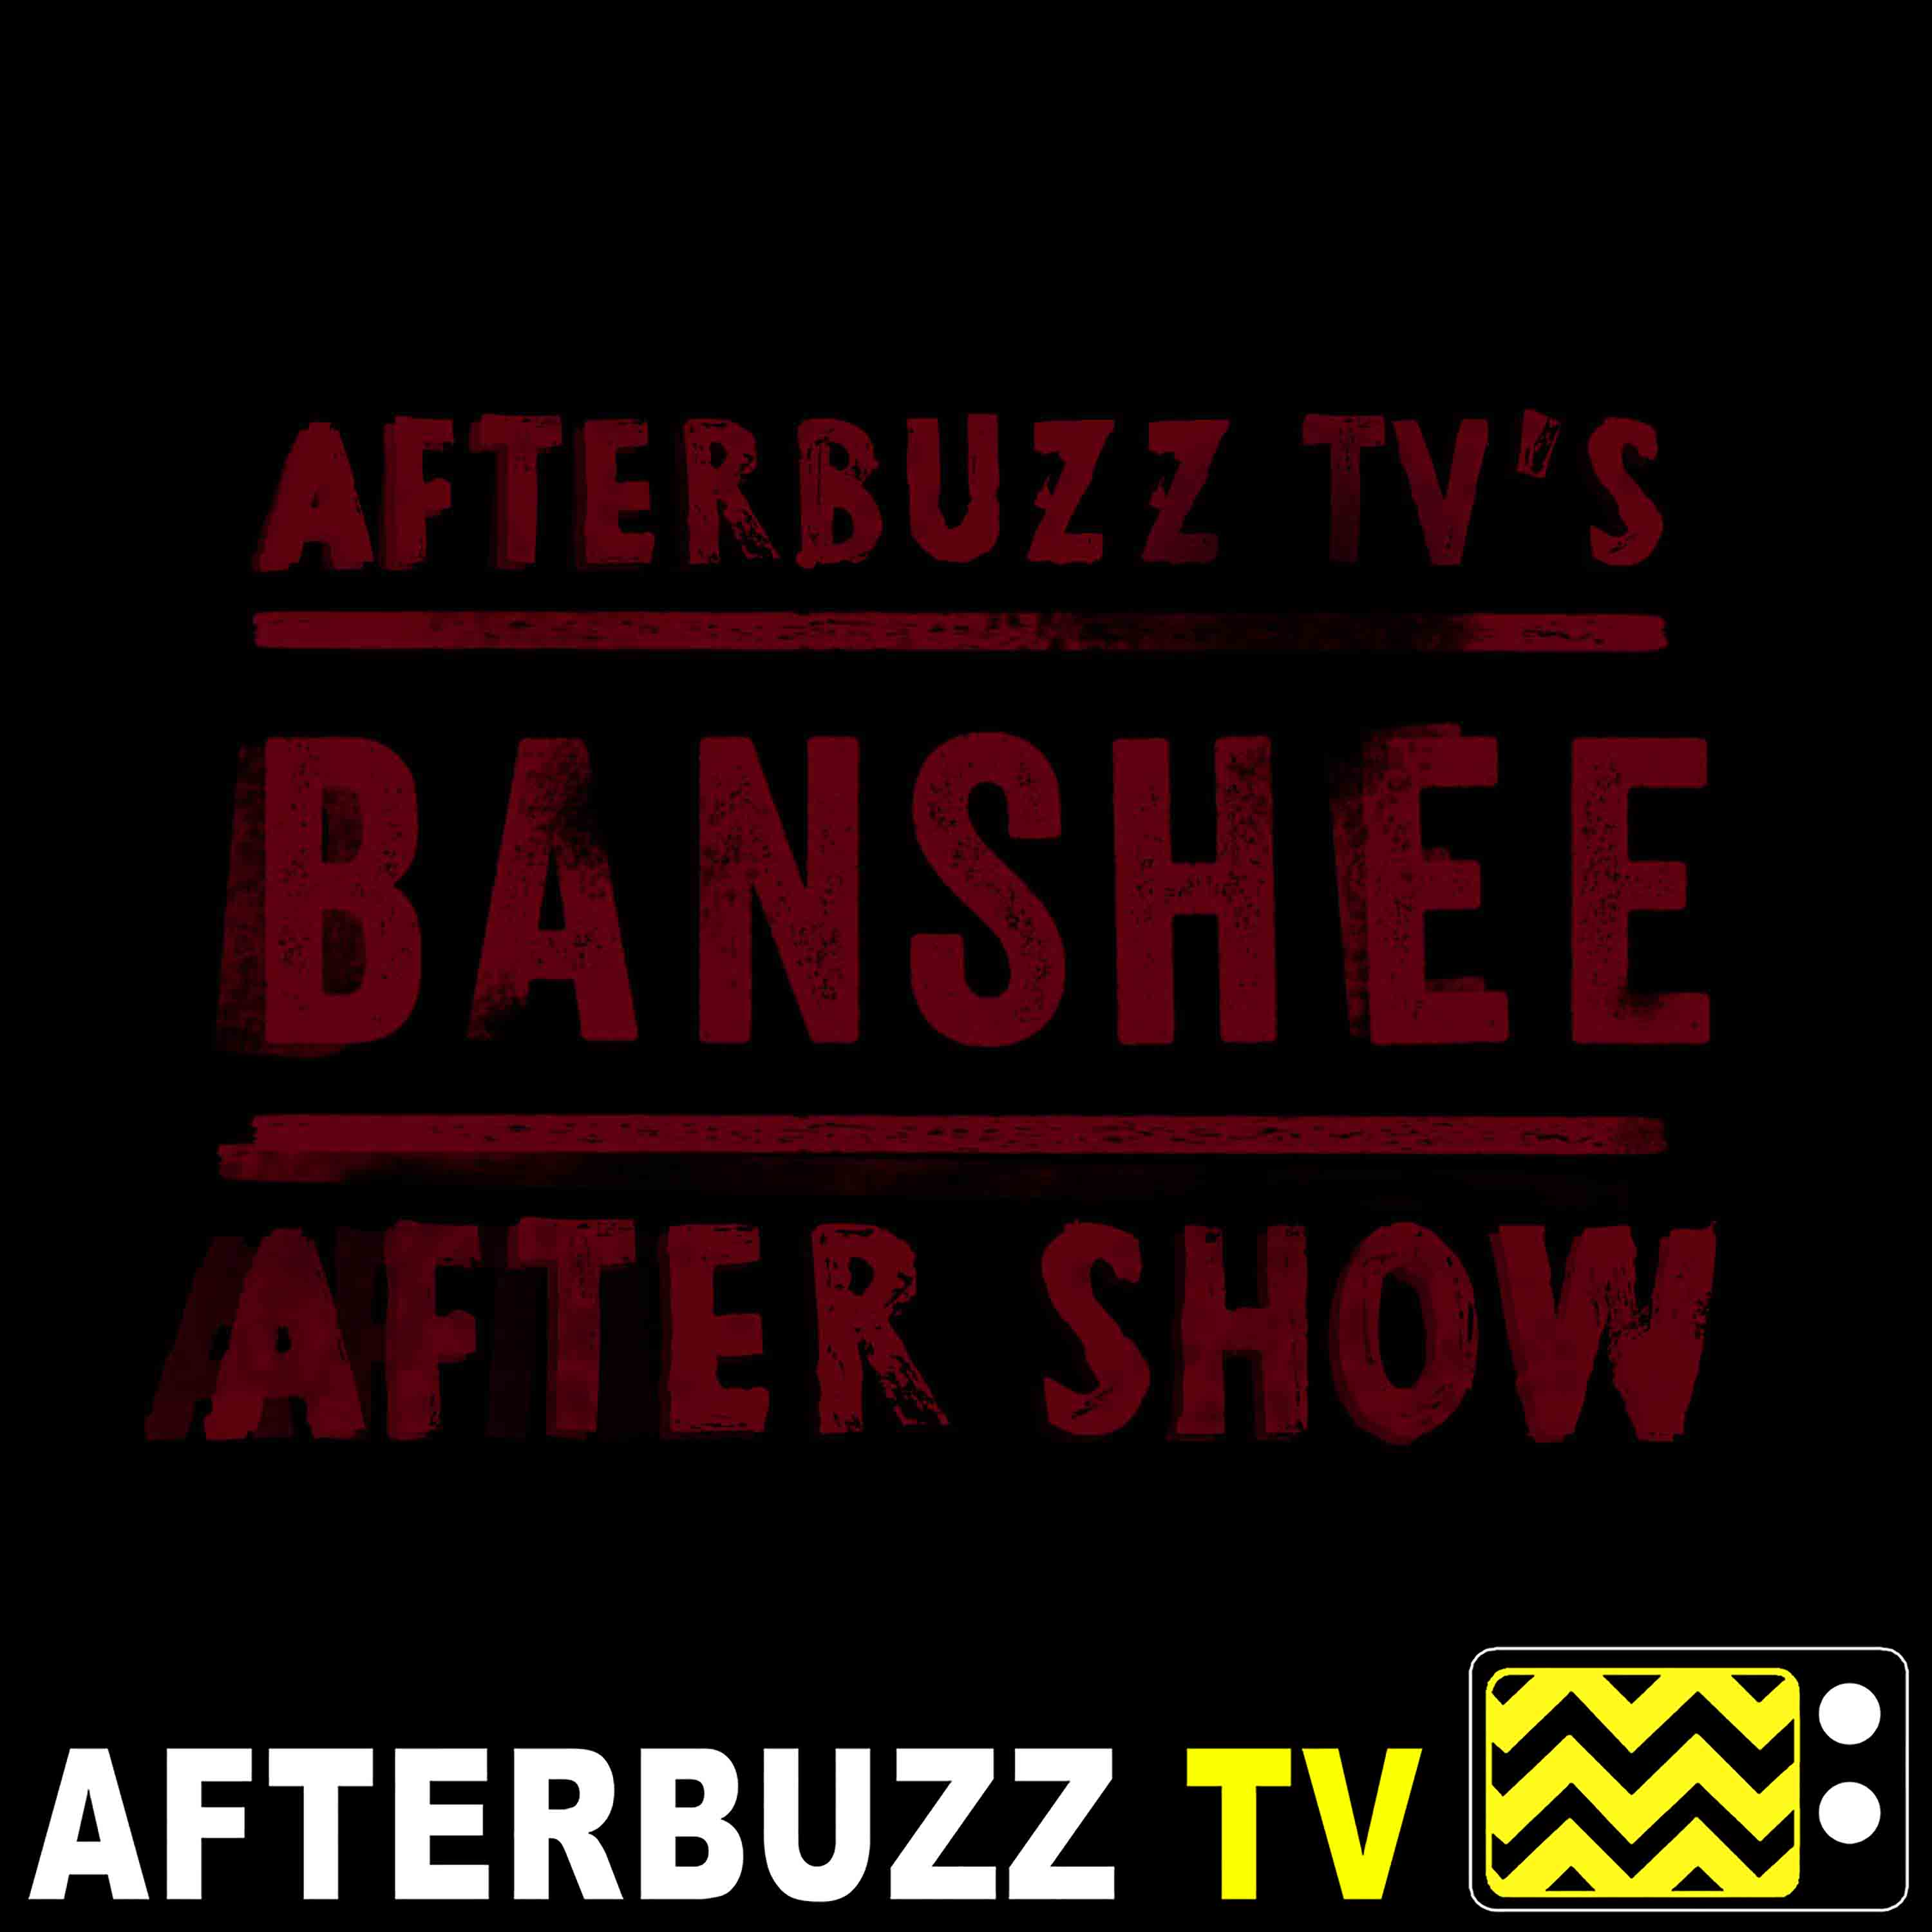 Banshee Reviews and After Show by AfterBuzz TV on Apple Podcasts on forever show, reign show, togetherness show, grantchester show, flashforward show, agent carter show, life unexpected show, peaky blinders show, f troop show, about a boy show, the red road show, marry me show, extant show, jennifer falls show, keeping up with the kardashians show, poldark show, the slap show, chasing life show, gracepoint show, xxl se show,